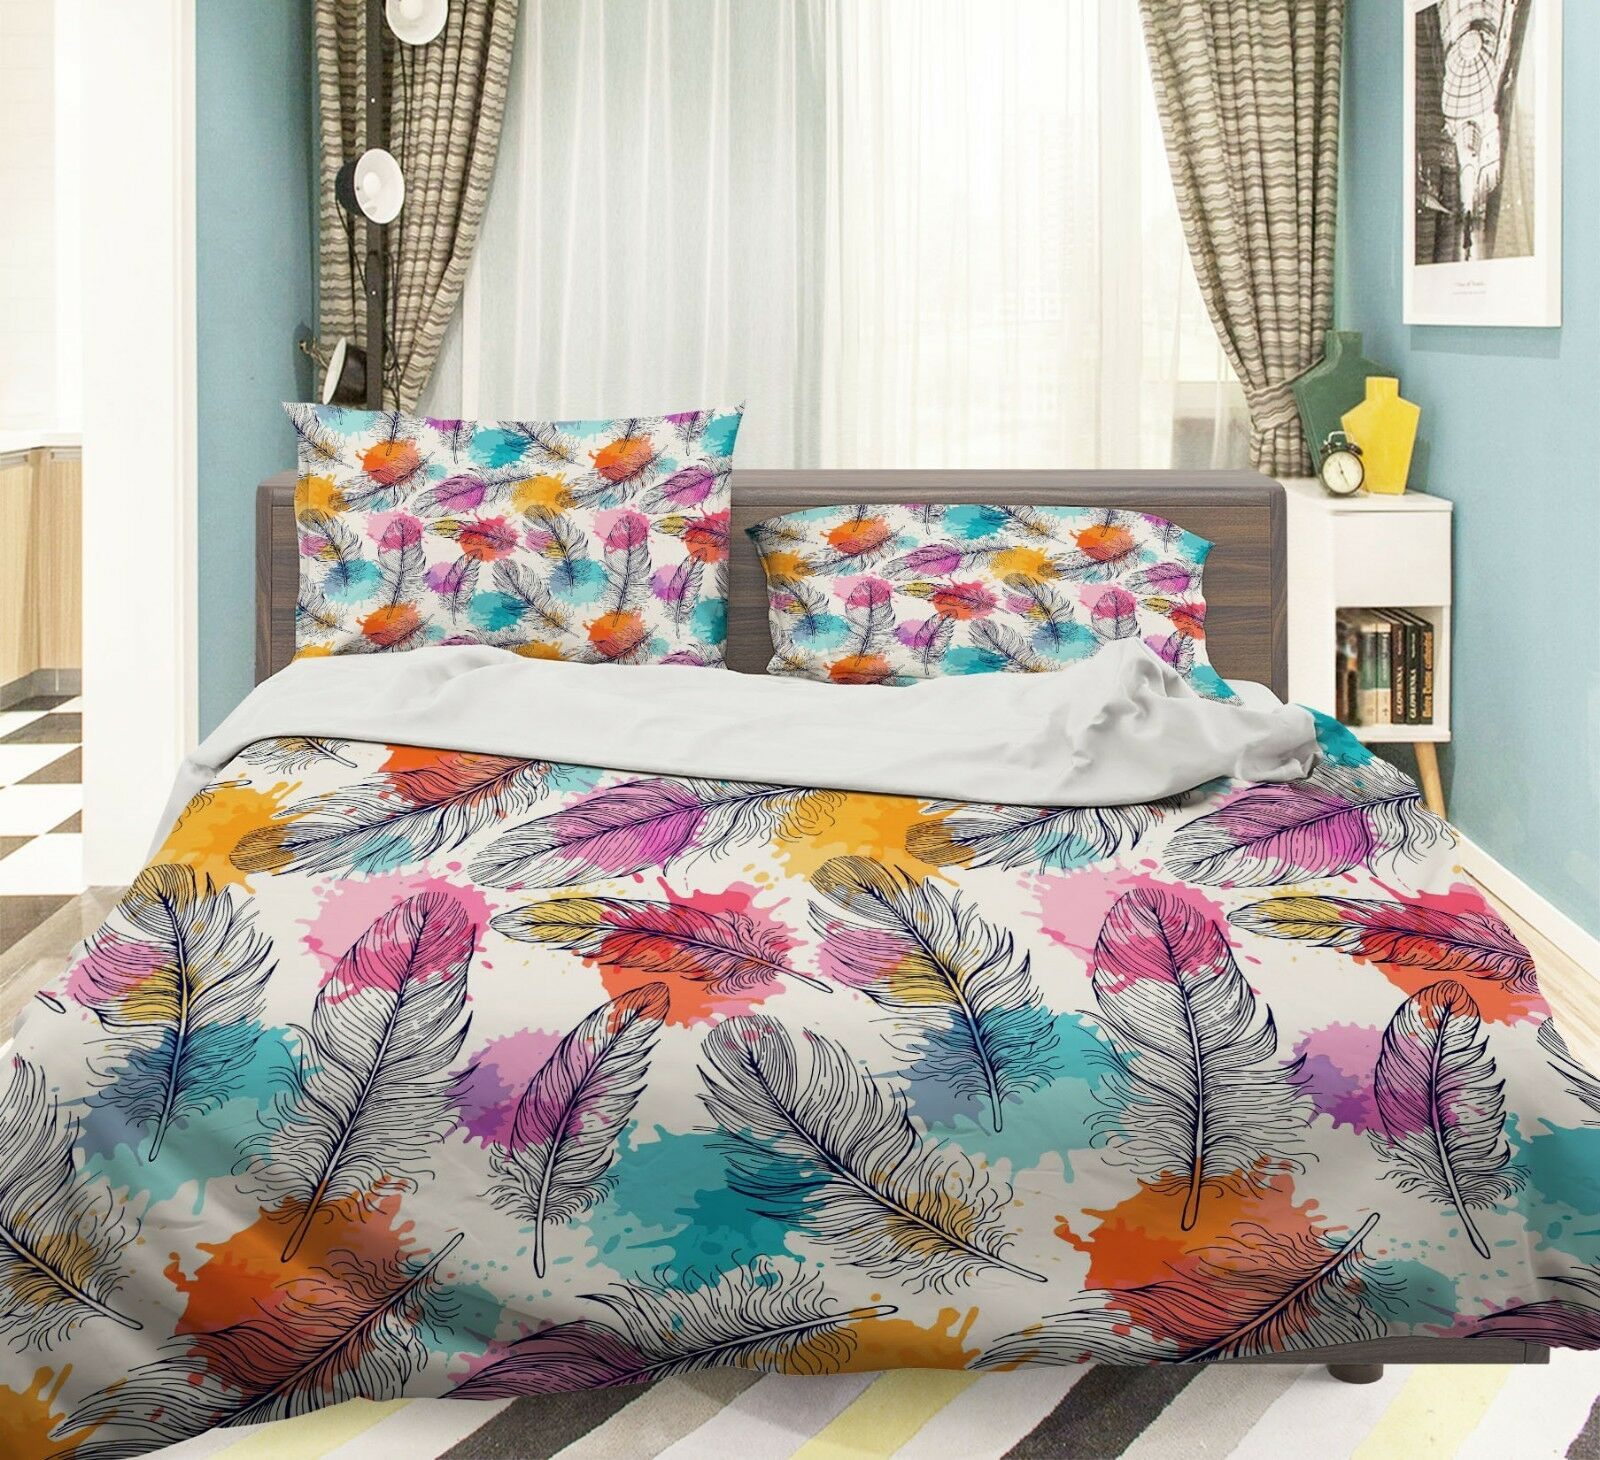 3D Painted Feathers6 Bed Pillowcases Quilt Duvet Cover Set Single Queen AU Carly